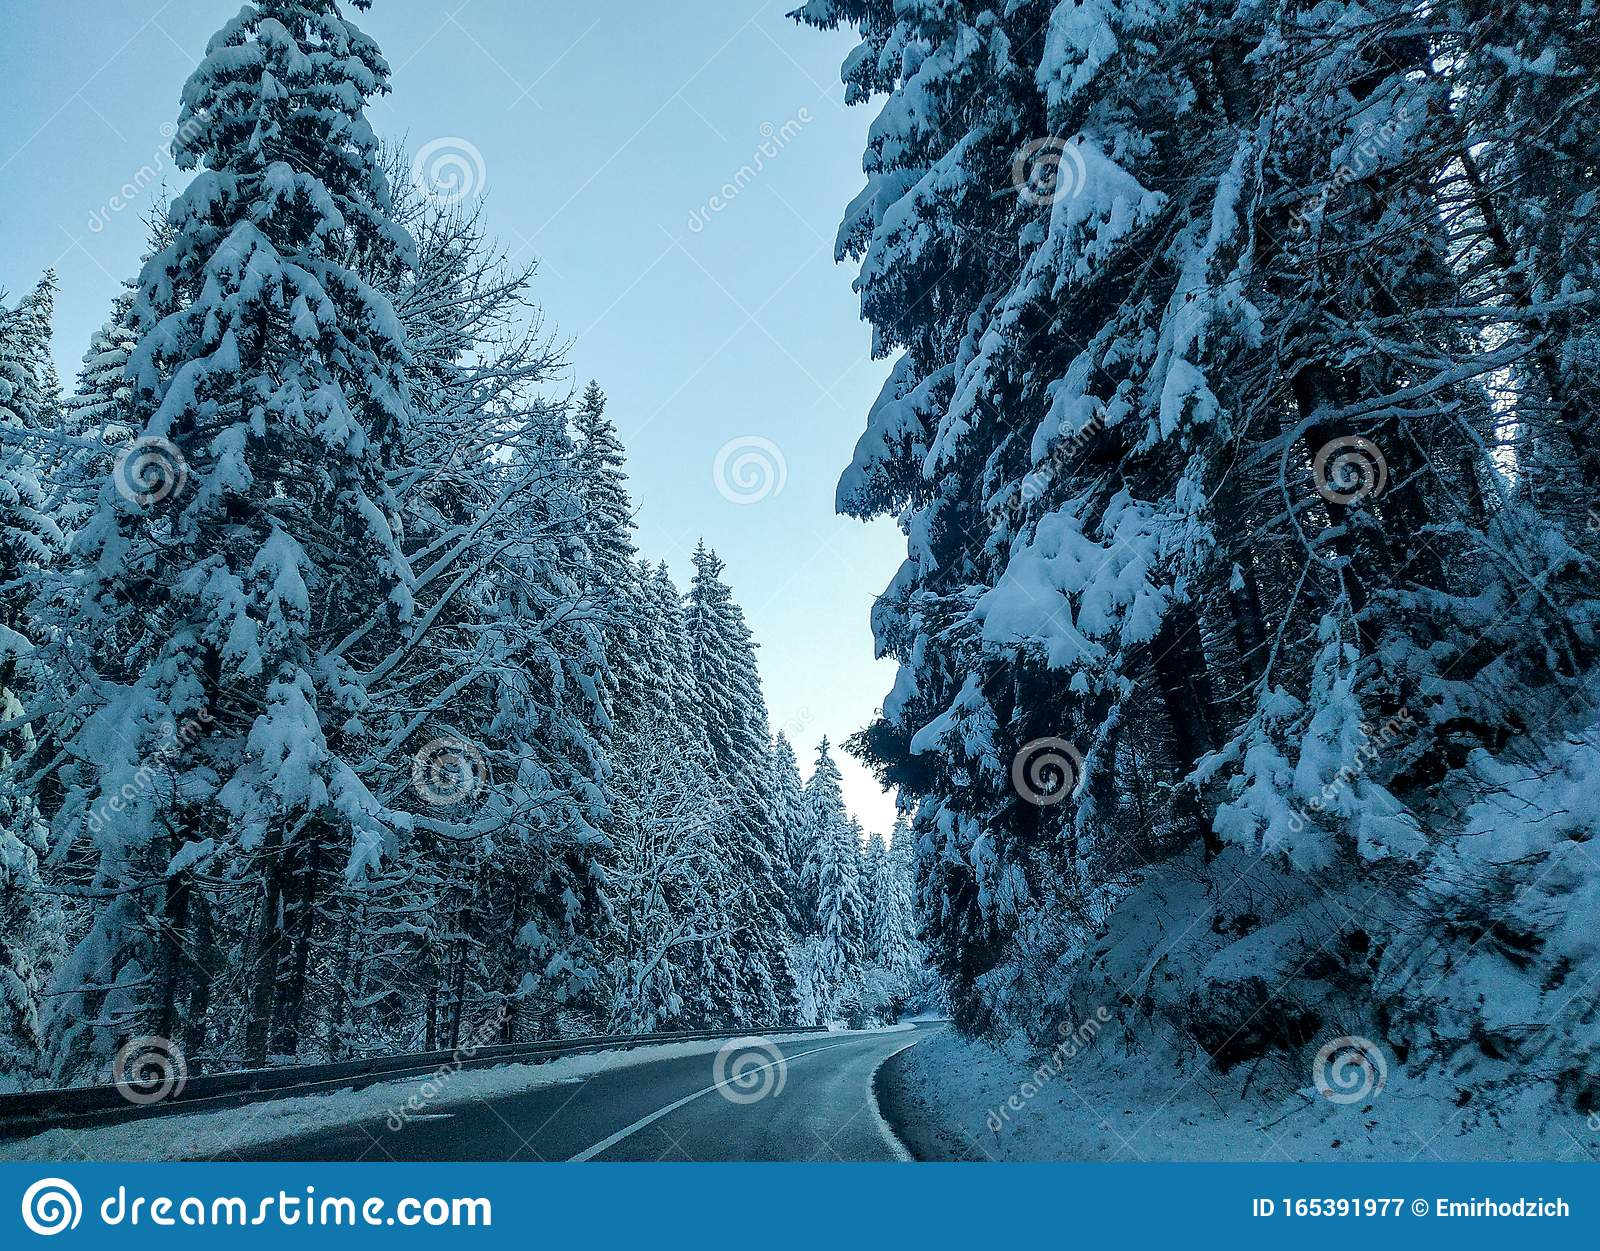 Evergreen Trees Snow Stock Photos Download 16 229